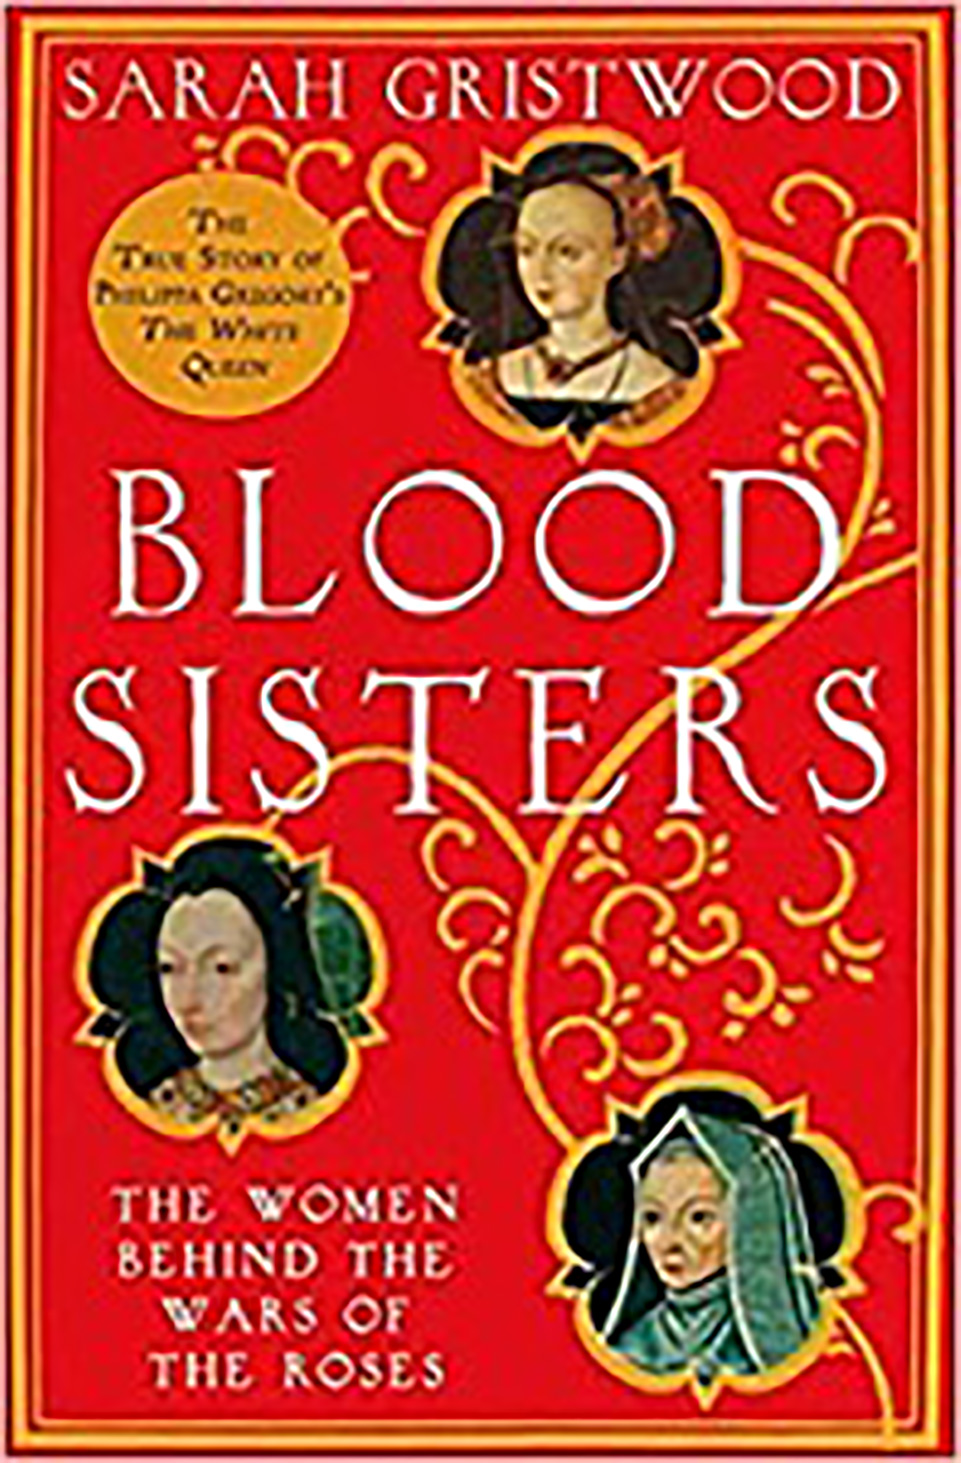 Front cover of a book: Blood Sisters by Sarah Gristwood